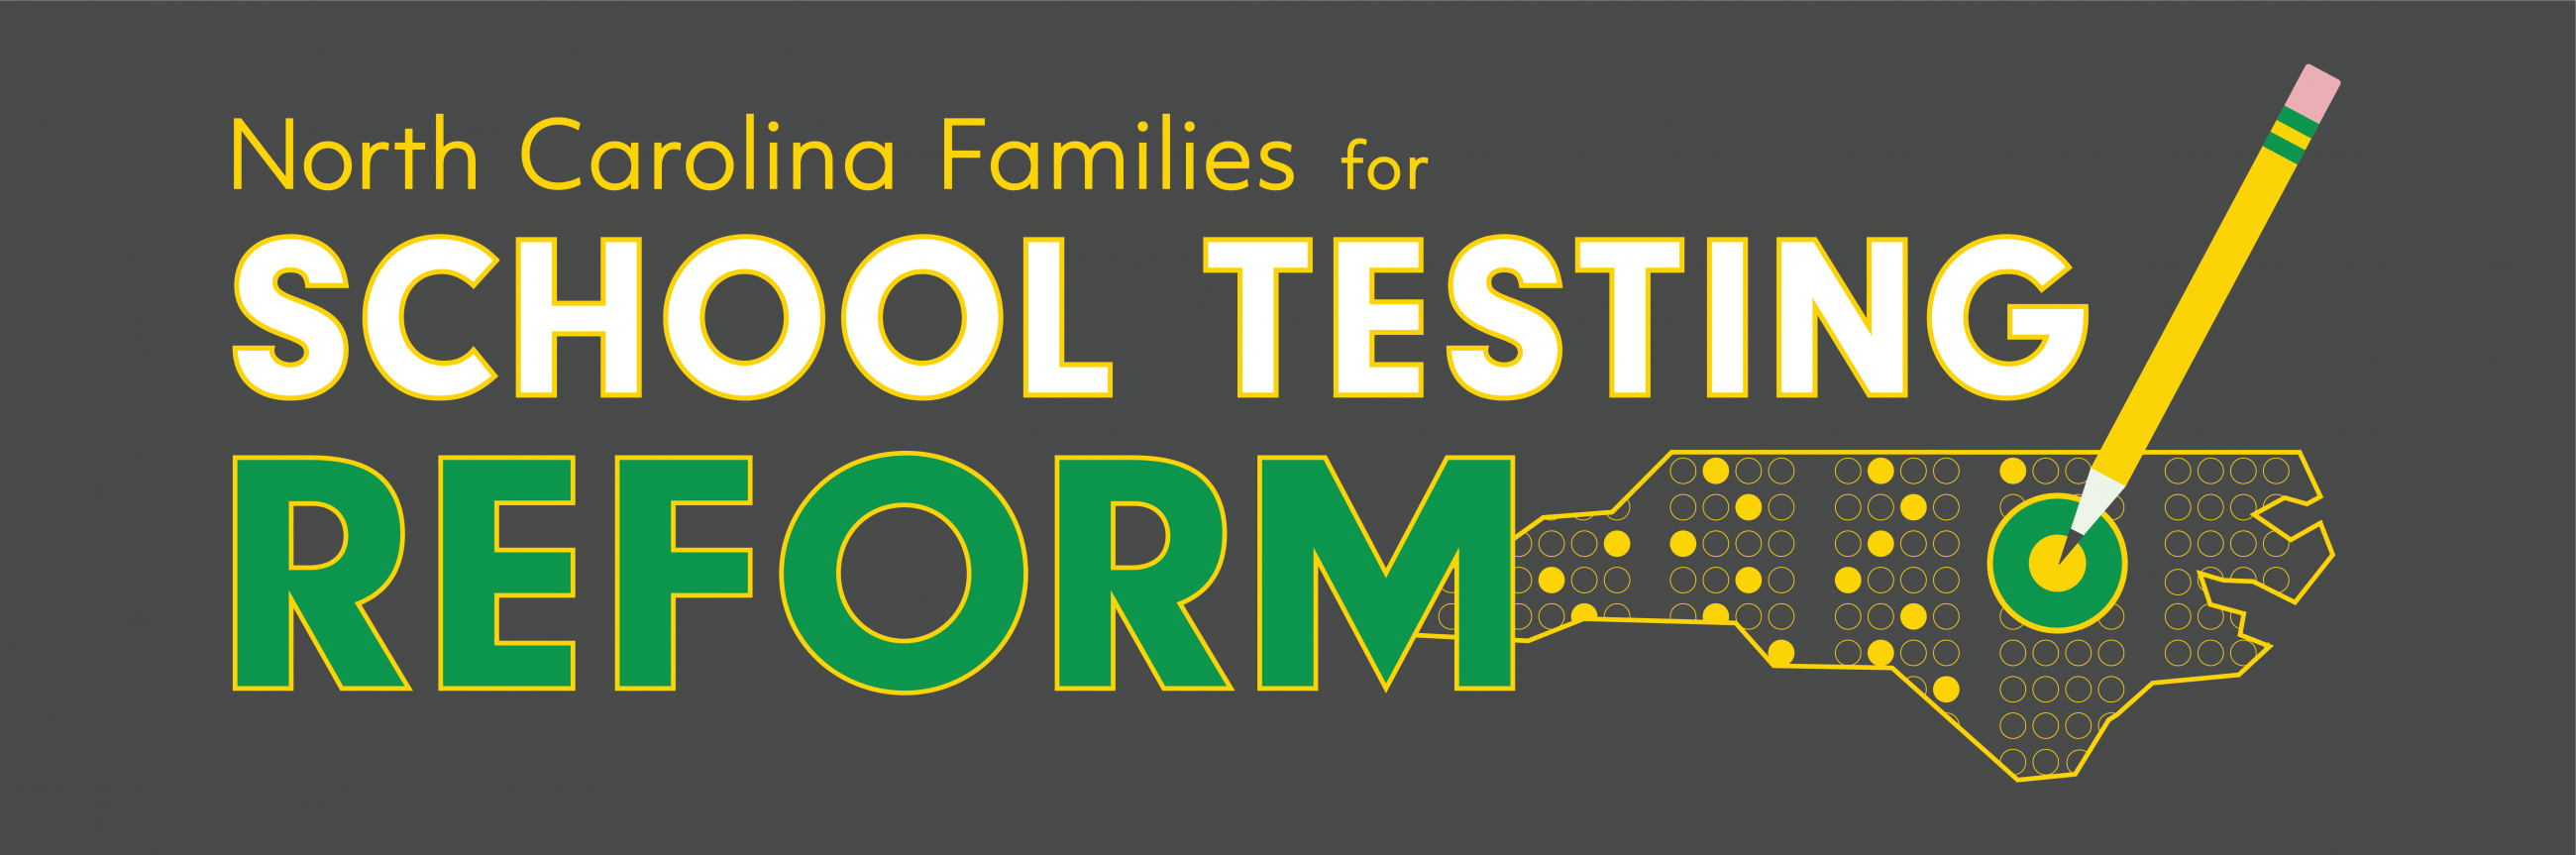 NC Families for School Testing Reform